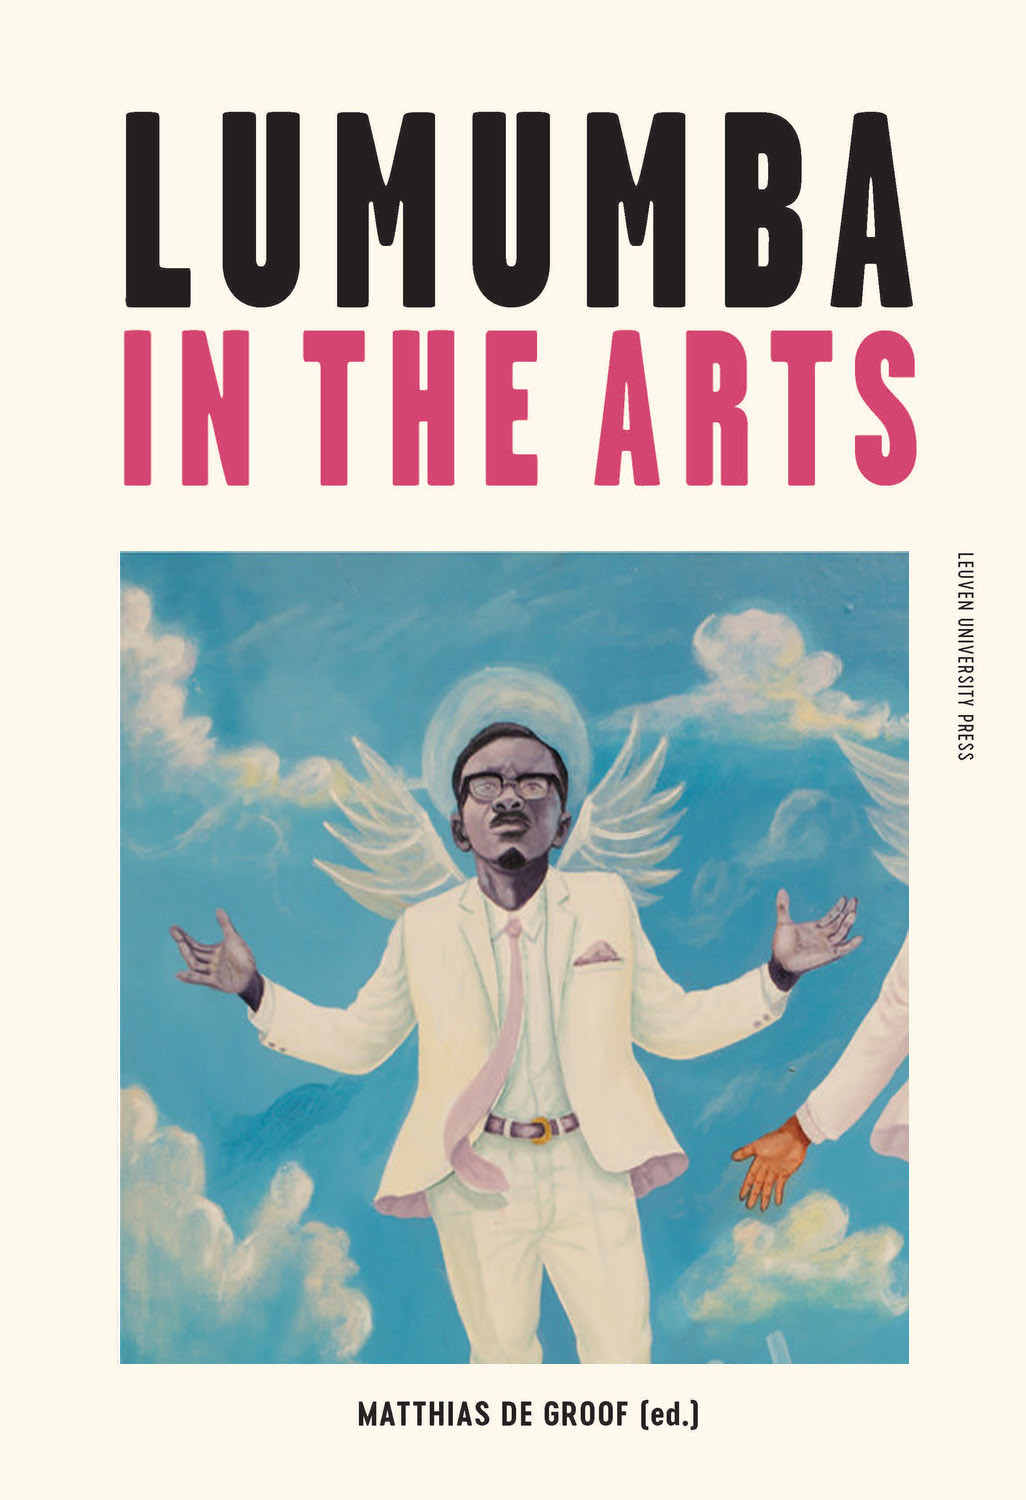 Lumumba in the Arts